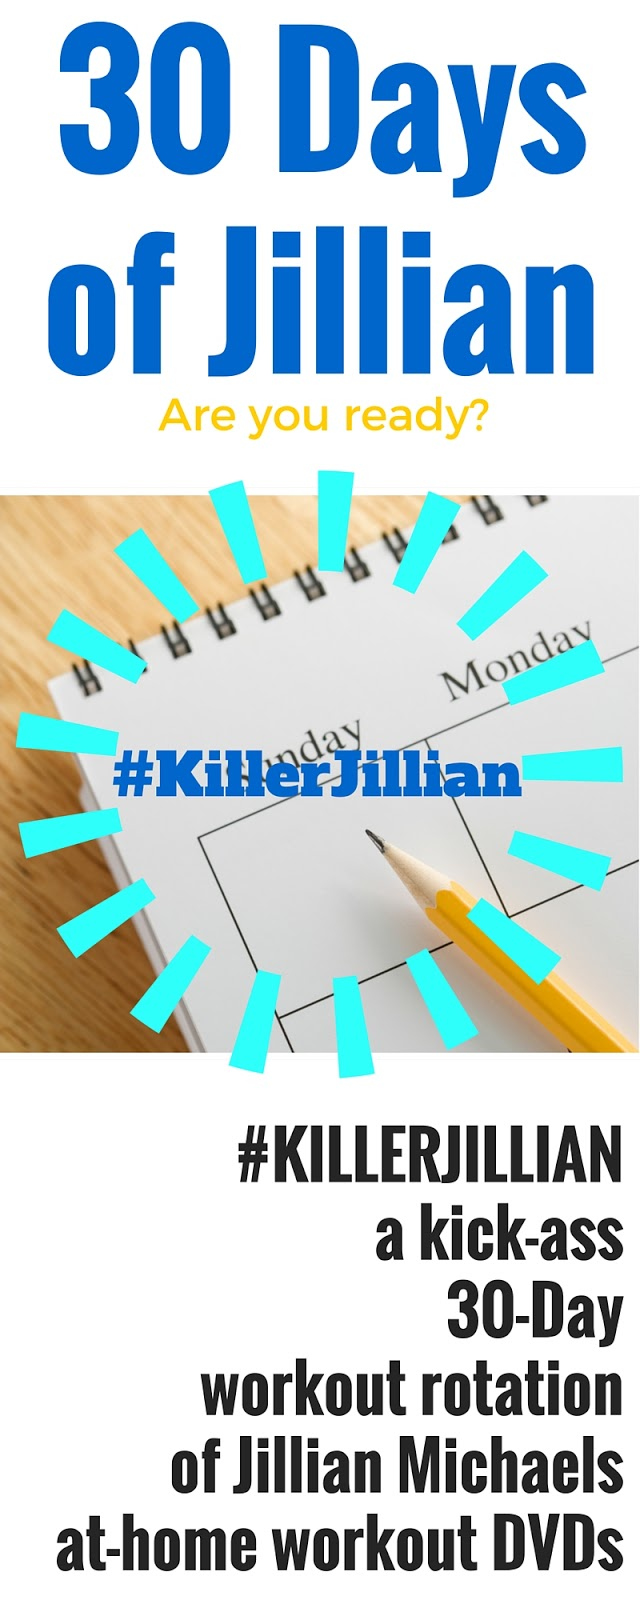 The #killerjillian challenge